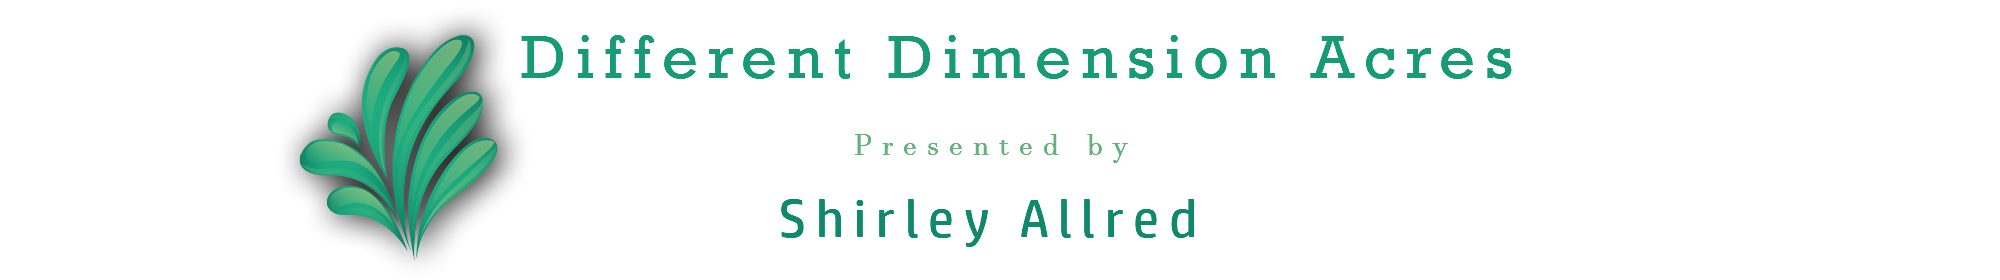 Different Dimension Acres